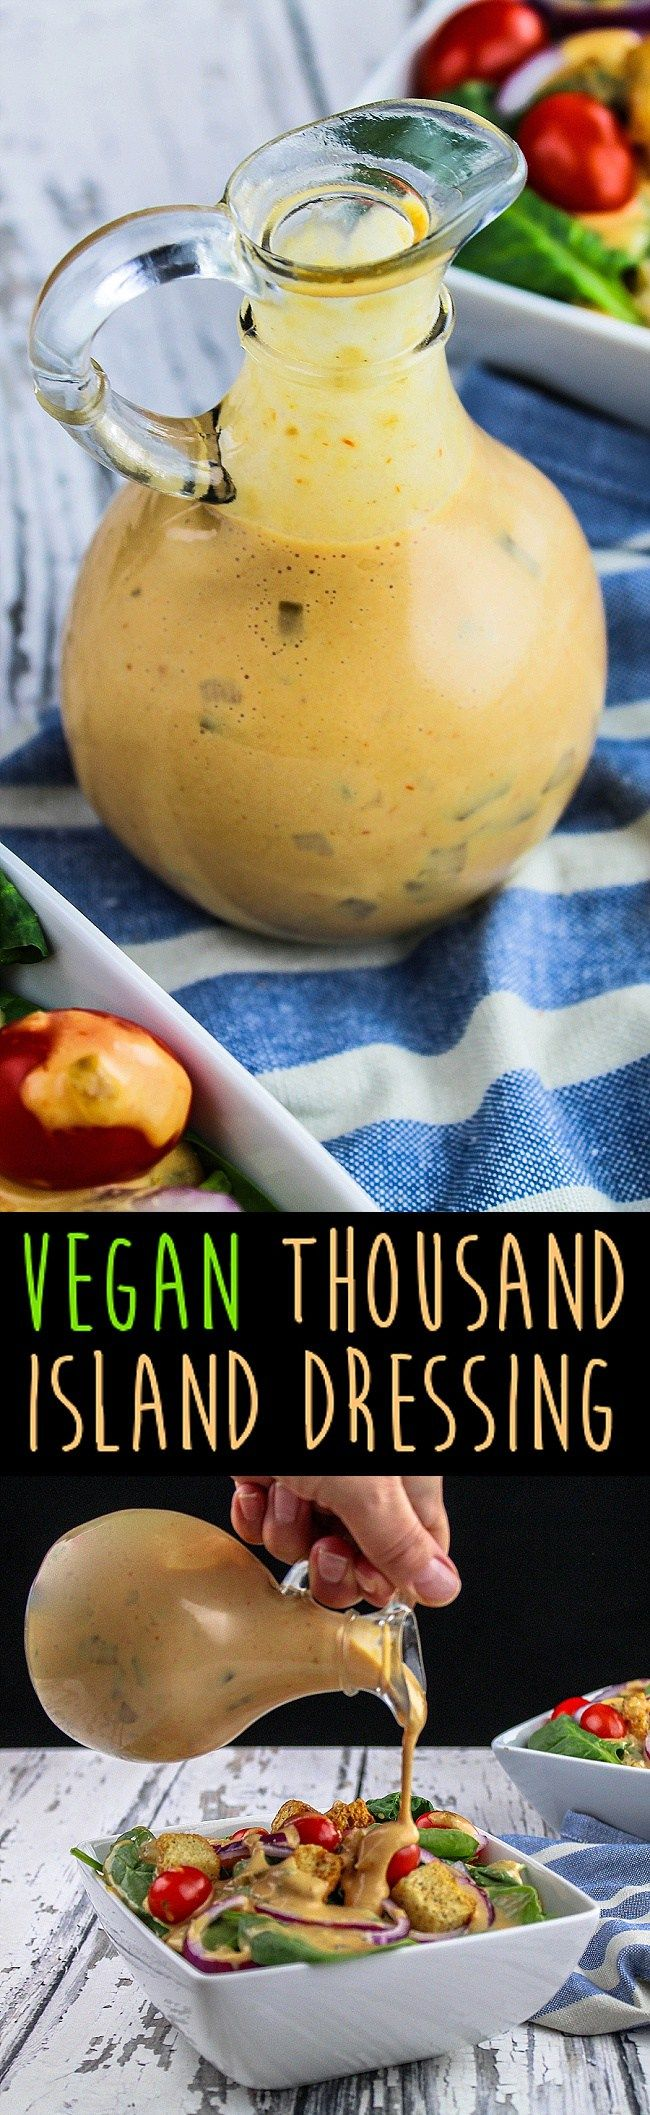 Vegan Thousand Island Oil-Free Dressing